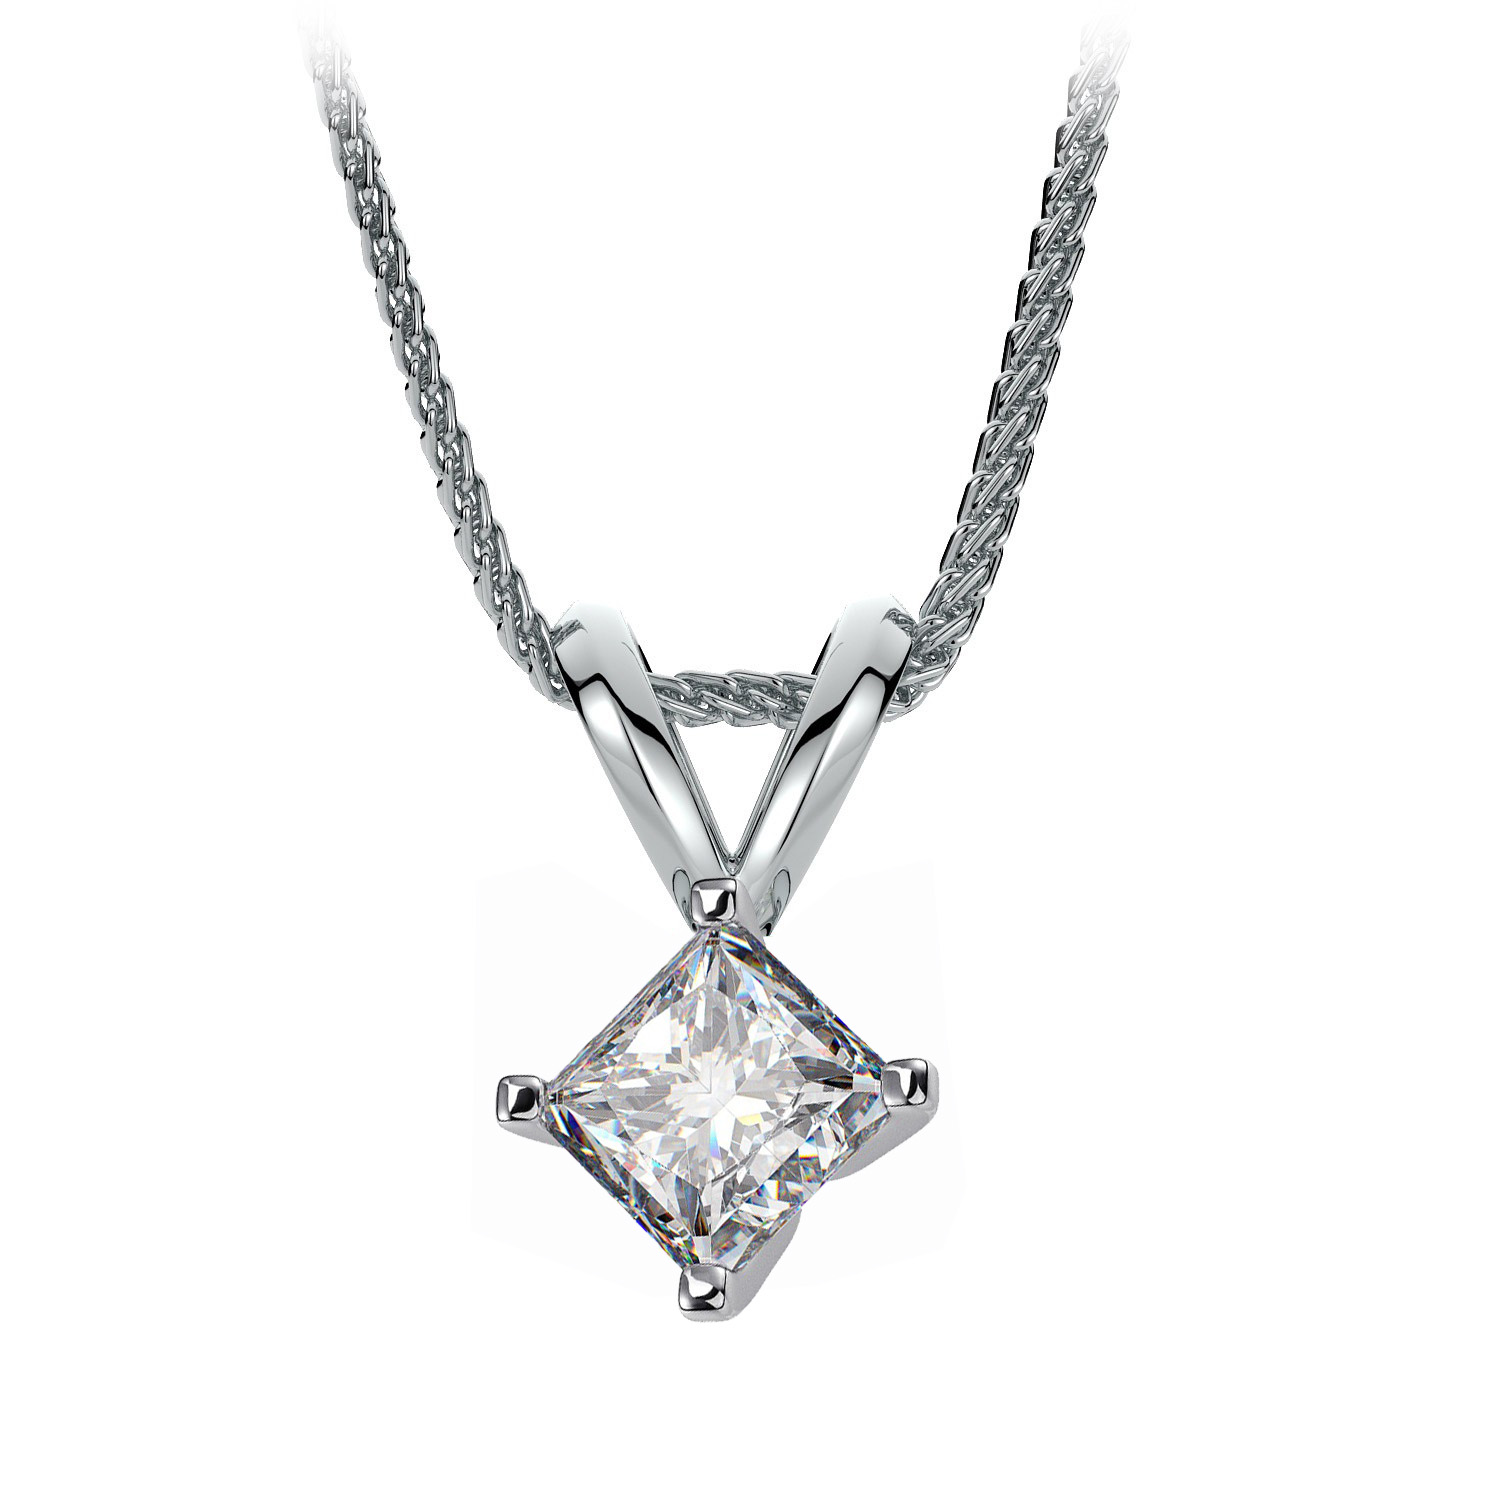 princess set channel pendants drop diamond image gold cut white pendant jewellery